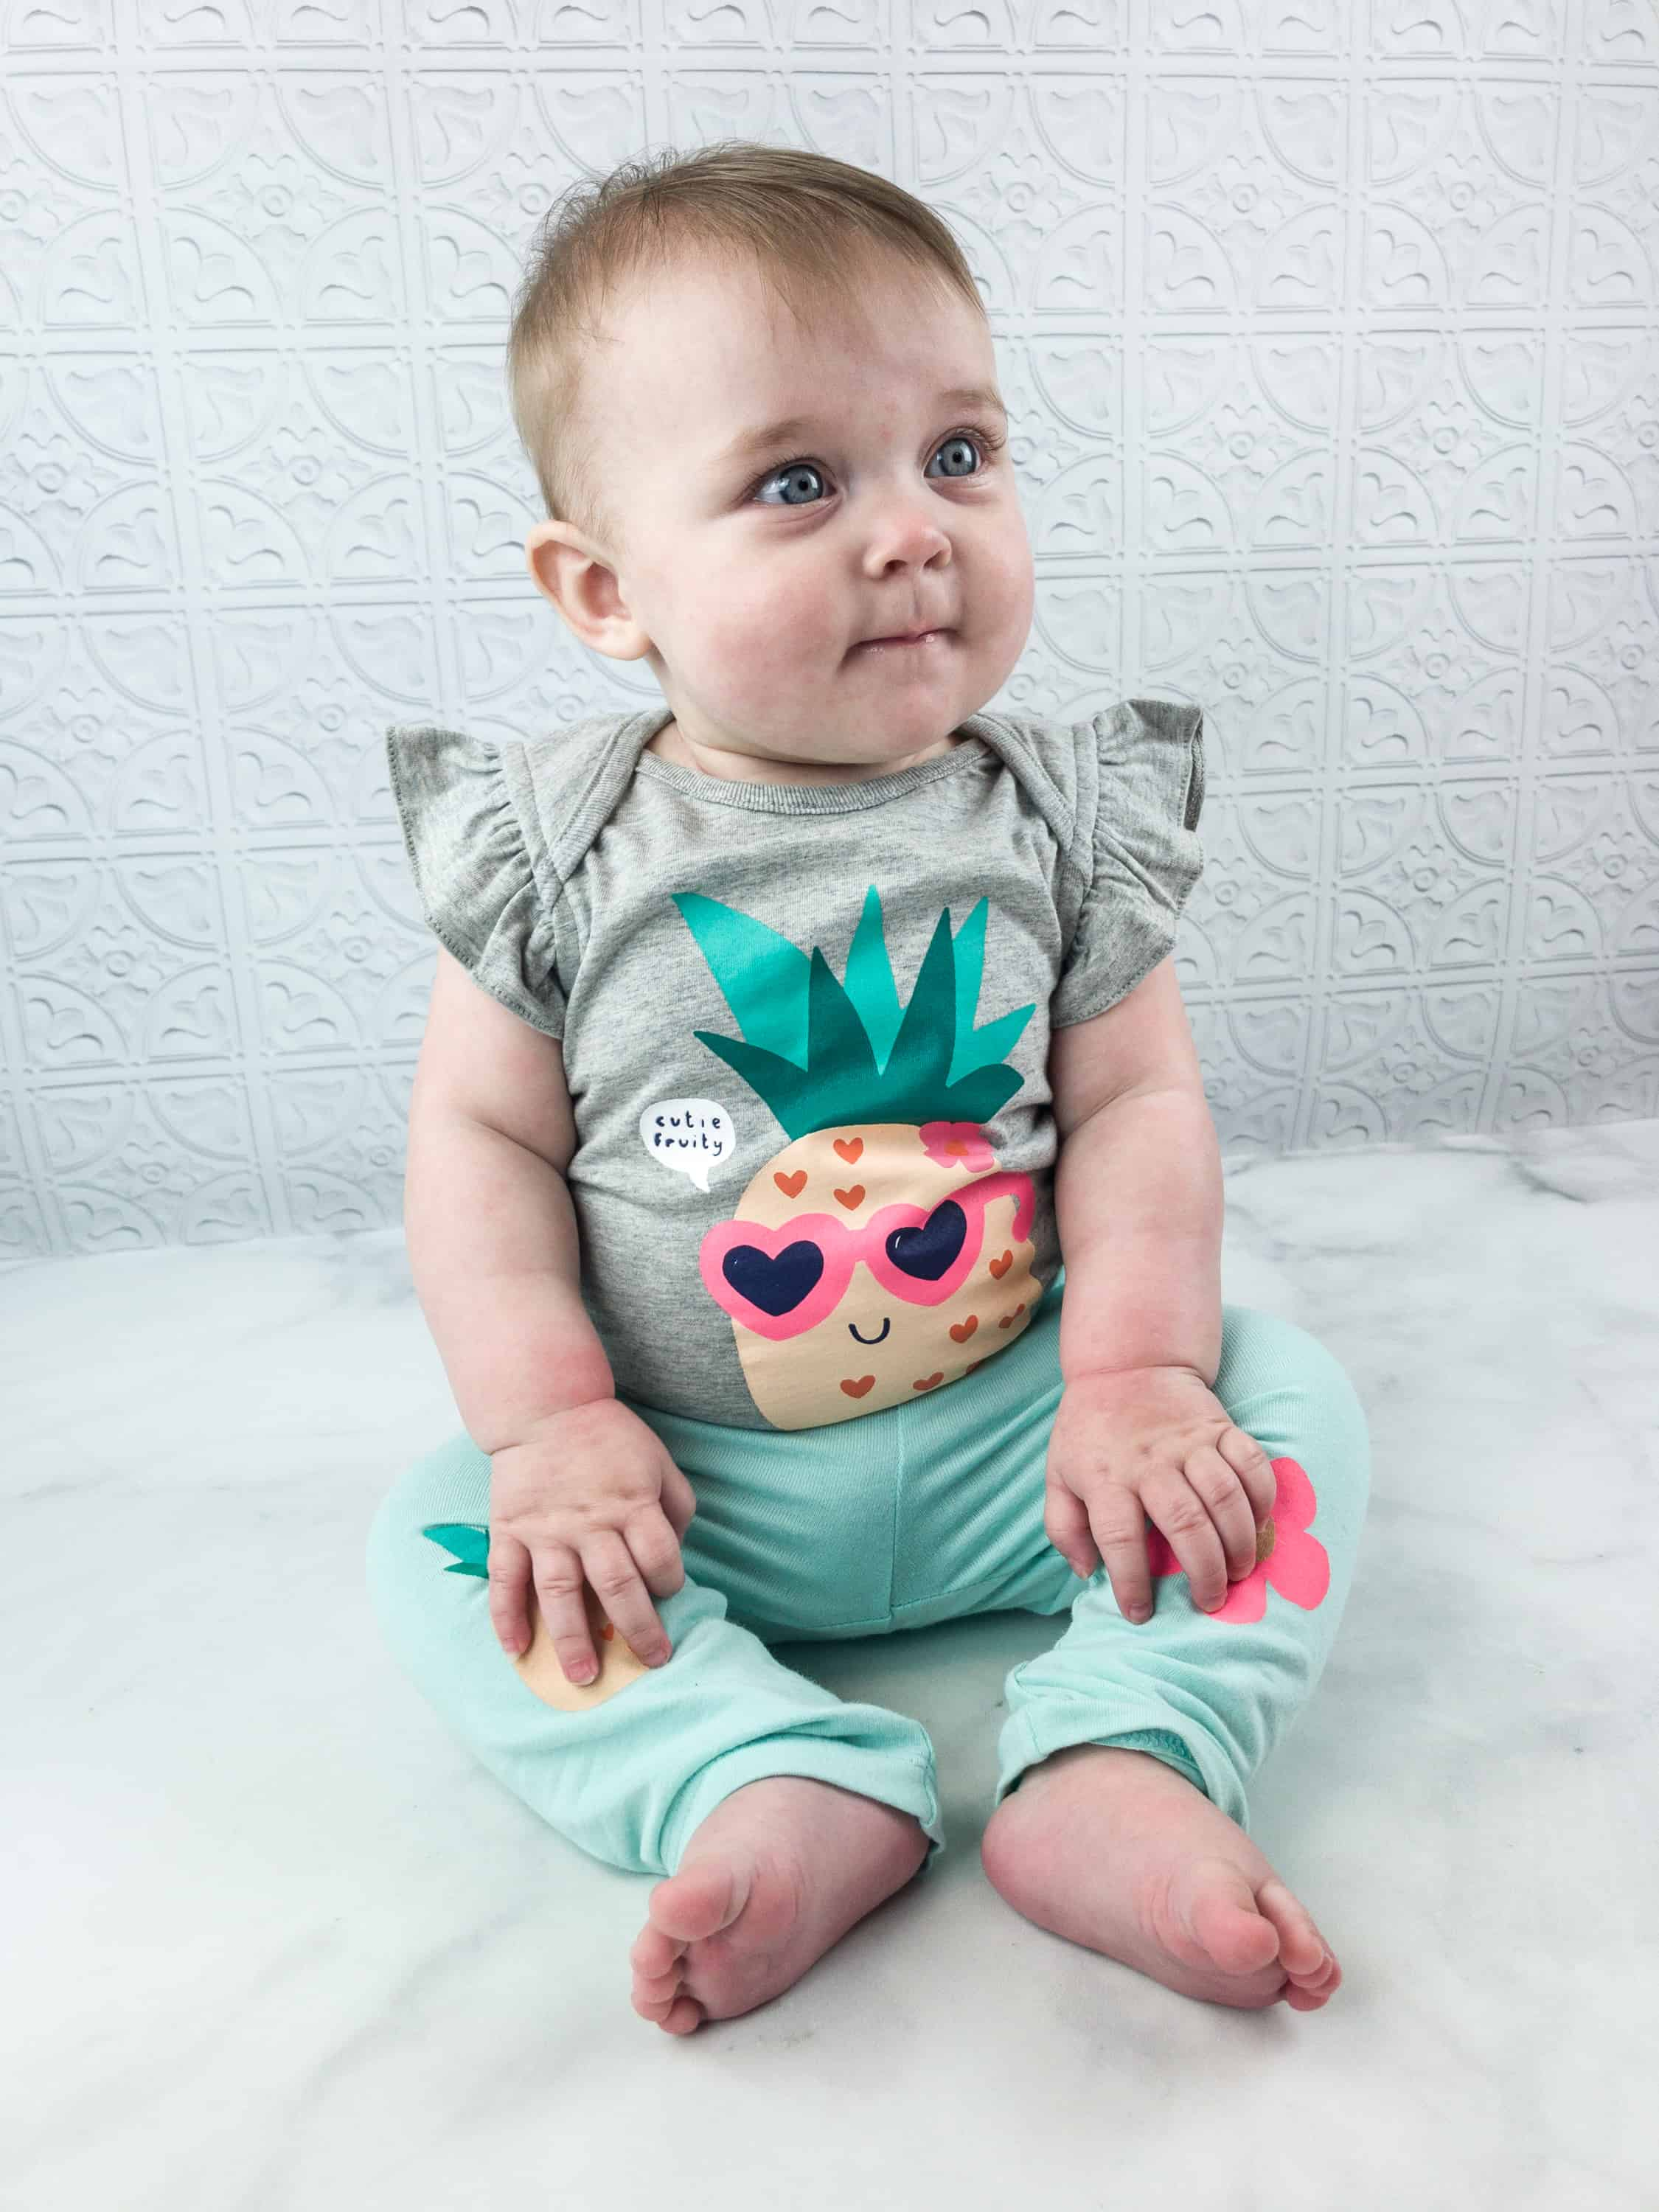 Babygap Outfitbox Summer 2018 Subscription Box Review Hello